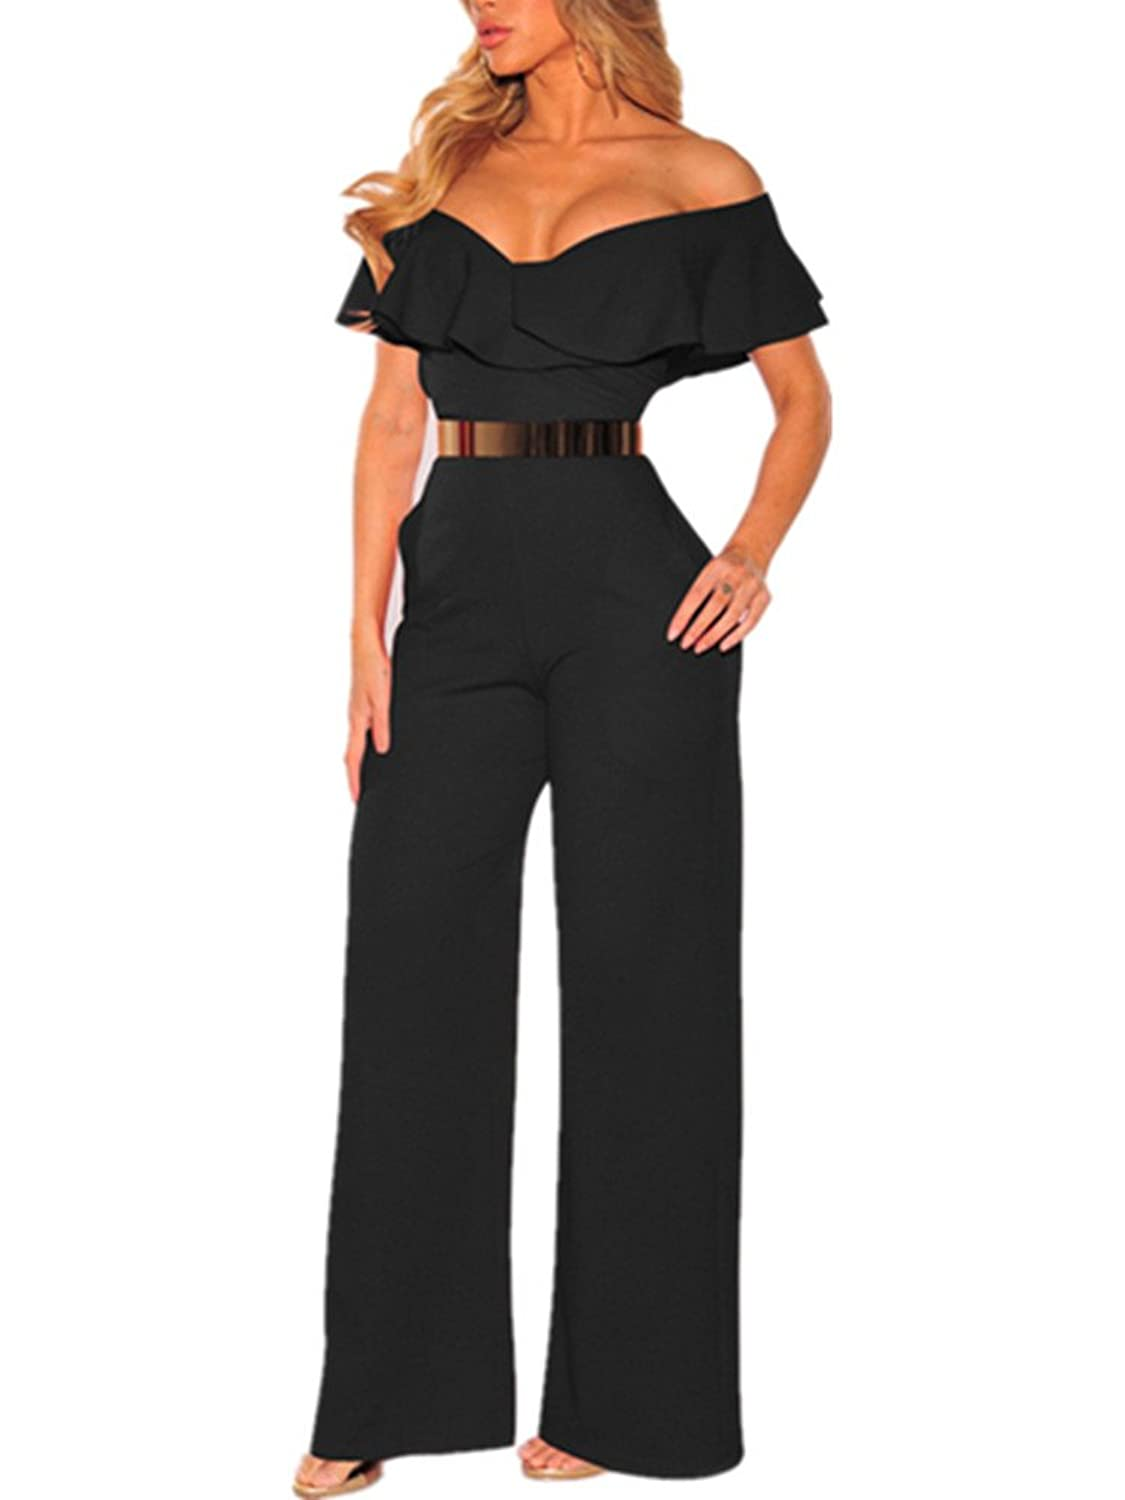 9efbee347e0 Top 10 wholesale One Piece Pant Suit Strapless - Chinabrands.com